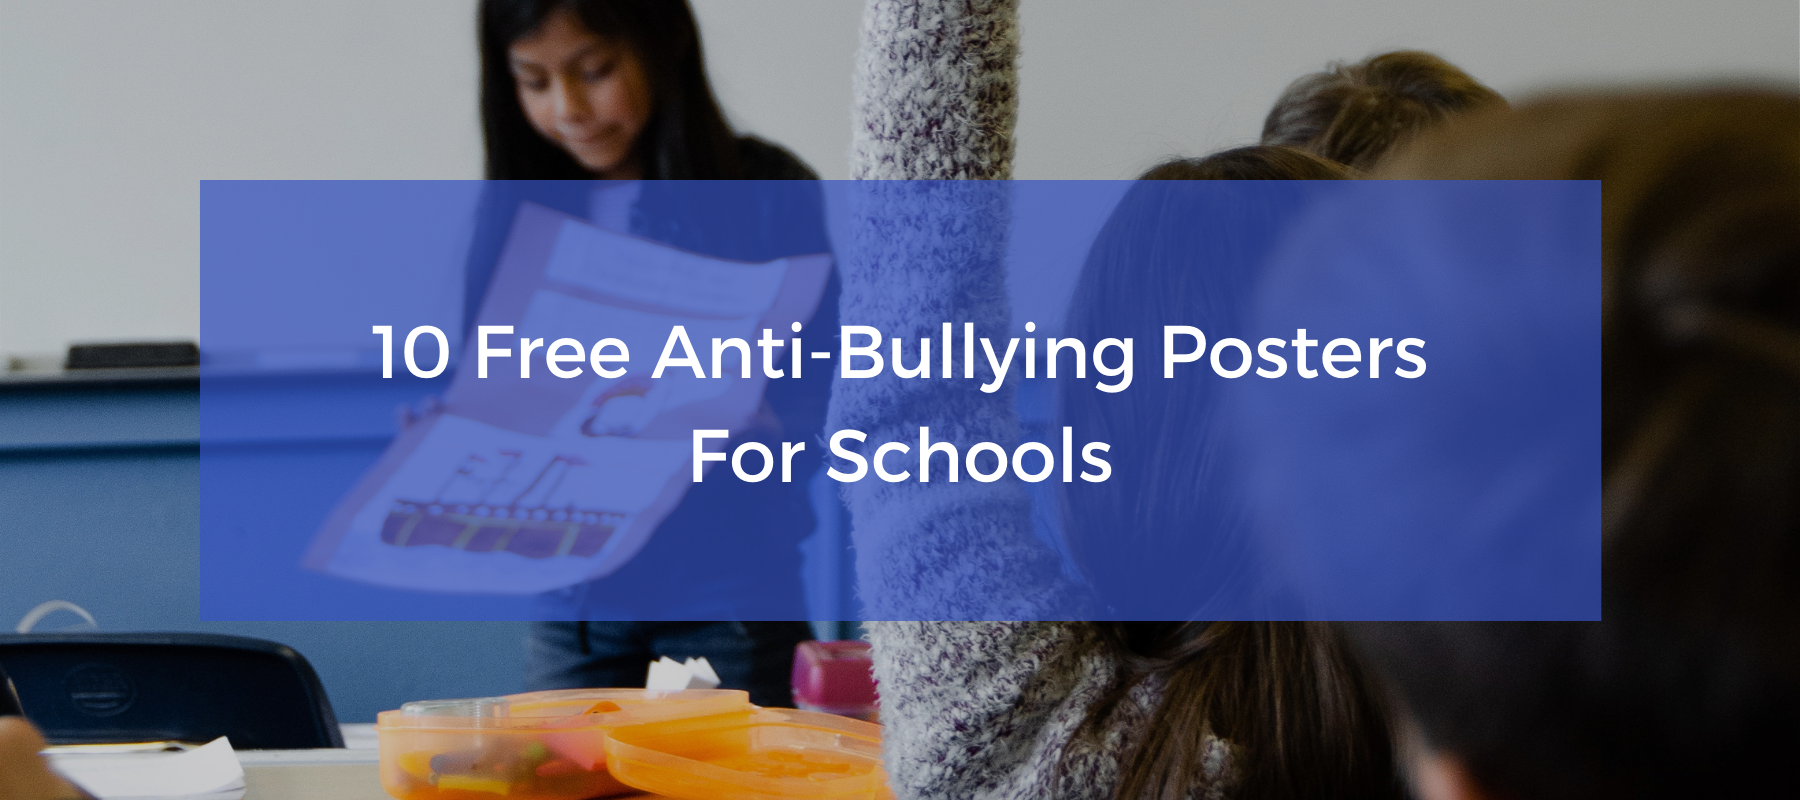 Free anti-bullying posters for schools to download